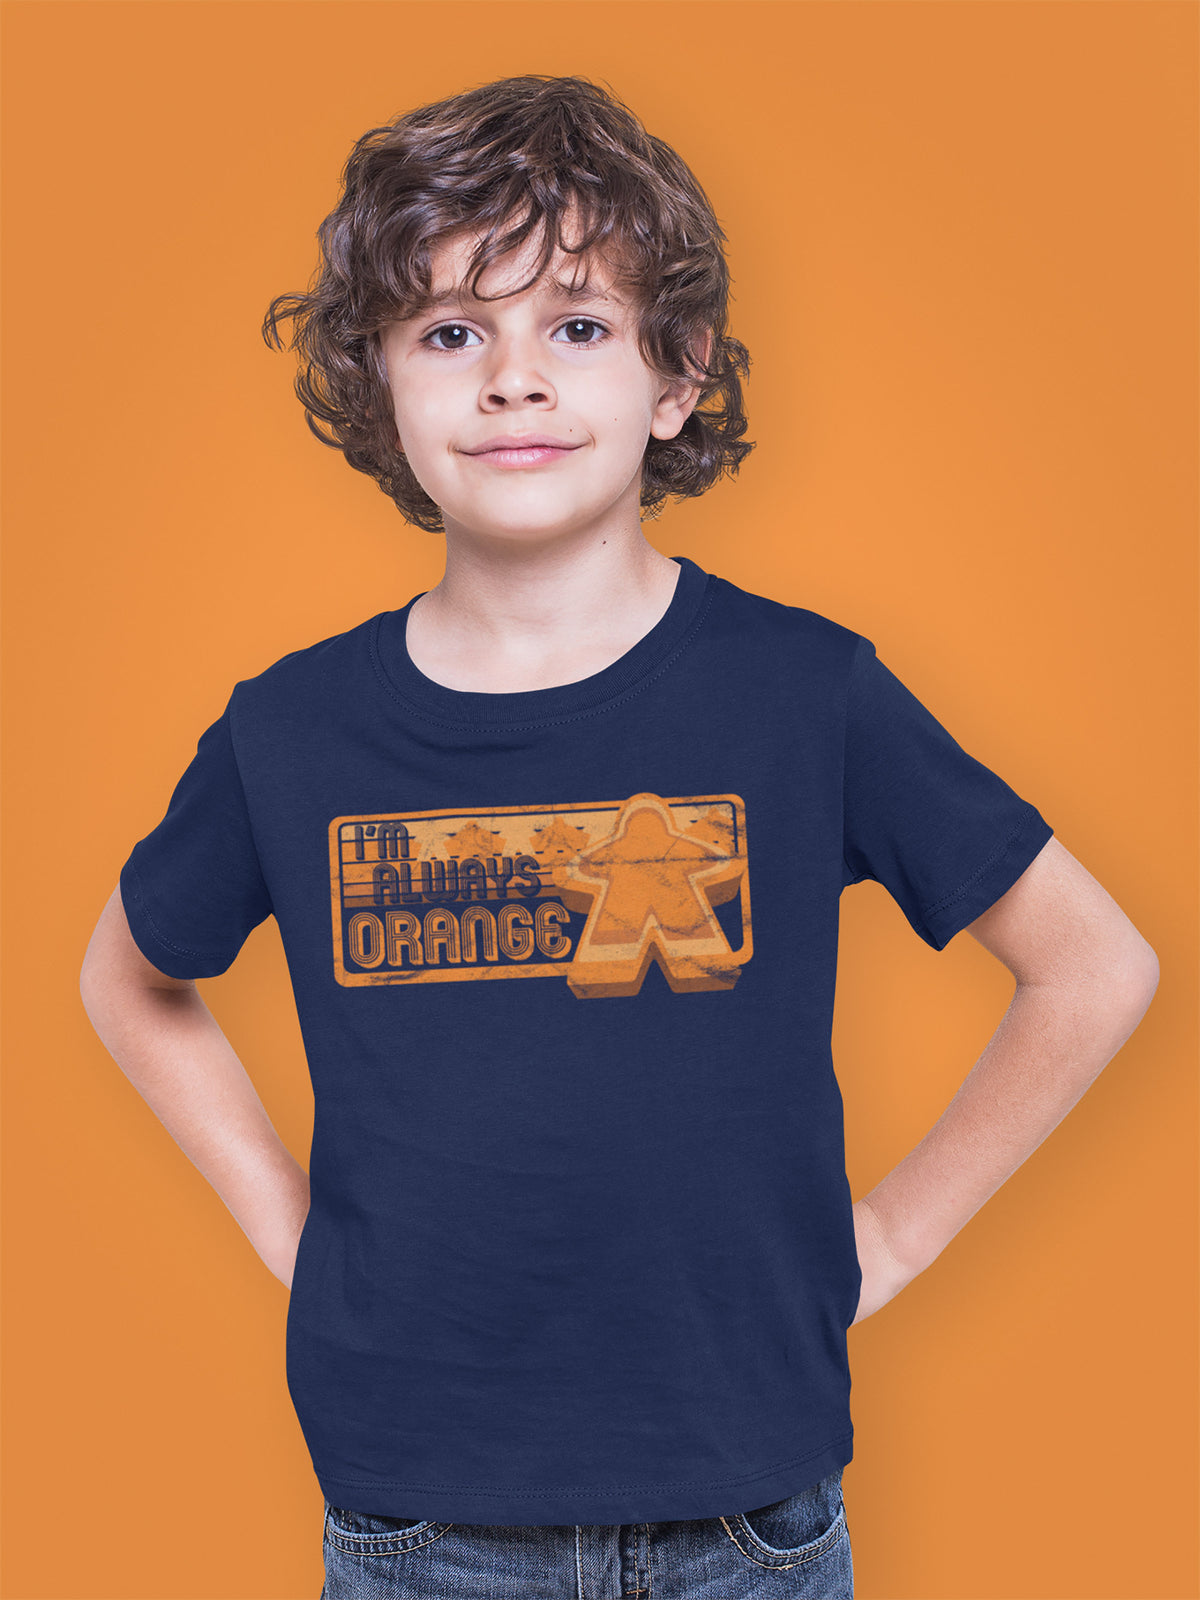 I'm Always Orange Meeple Board Game T-Shirt Action Shot Boy's